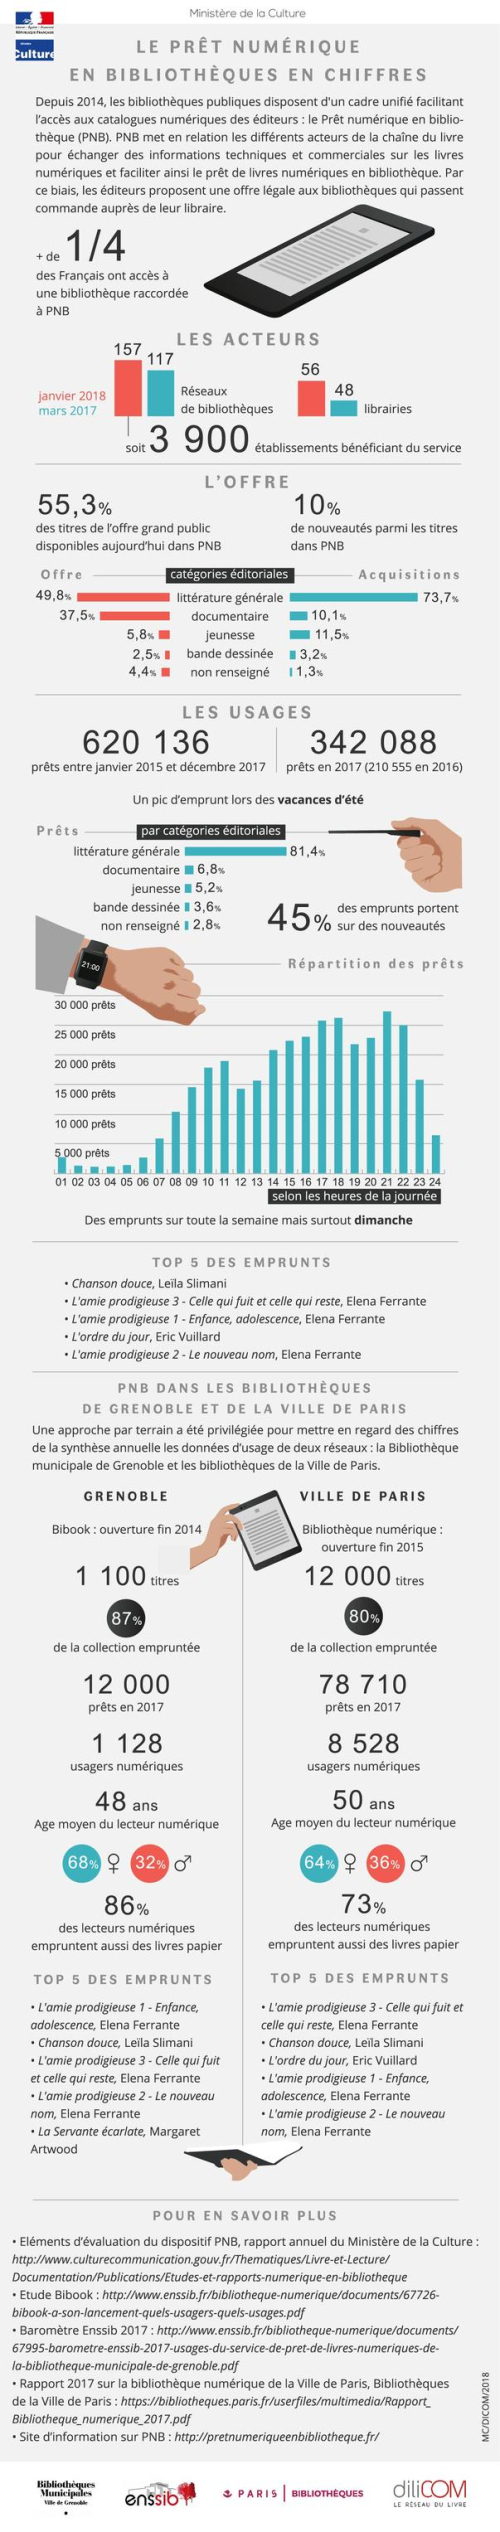 Infographie-PNB-mars-2018_full_with